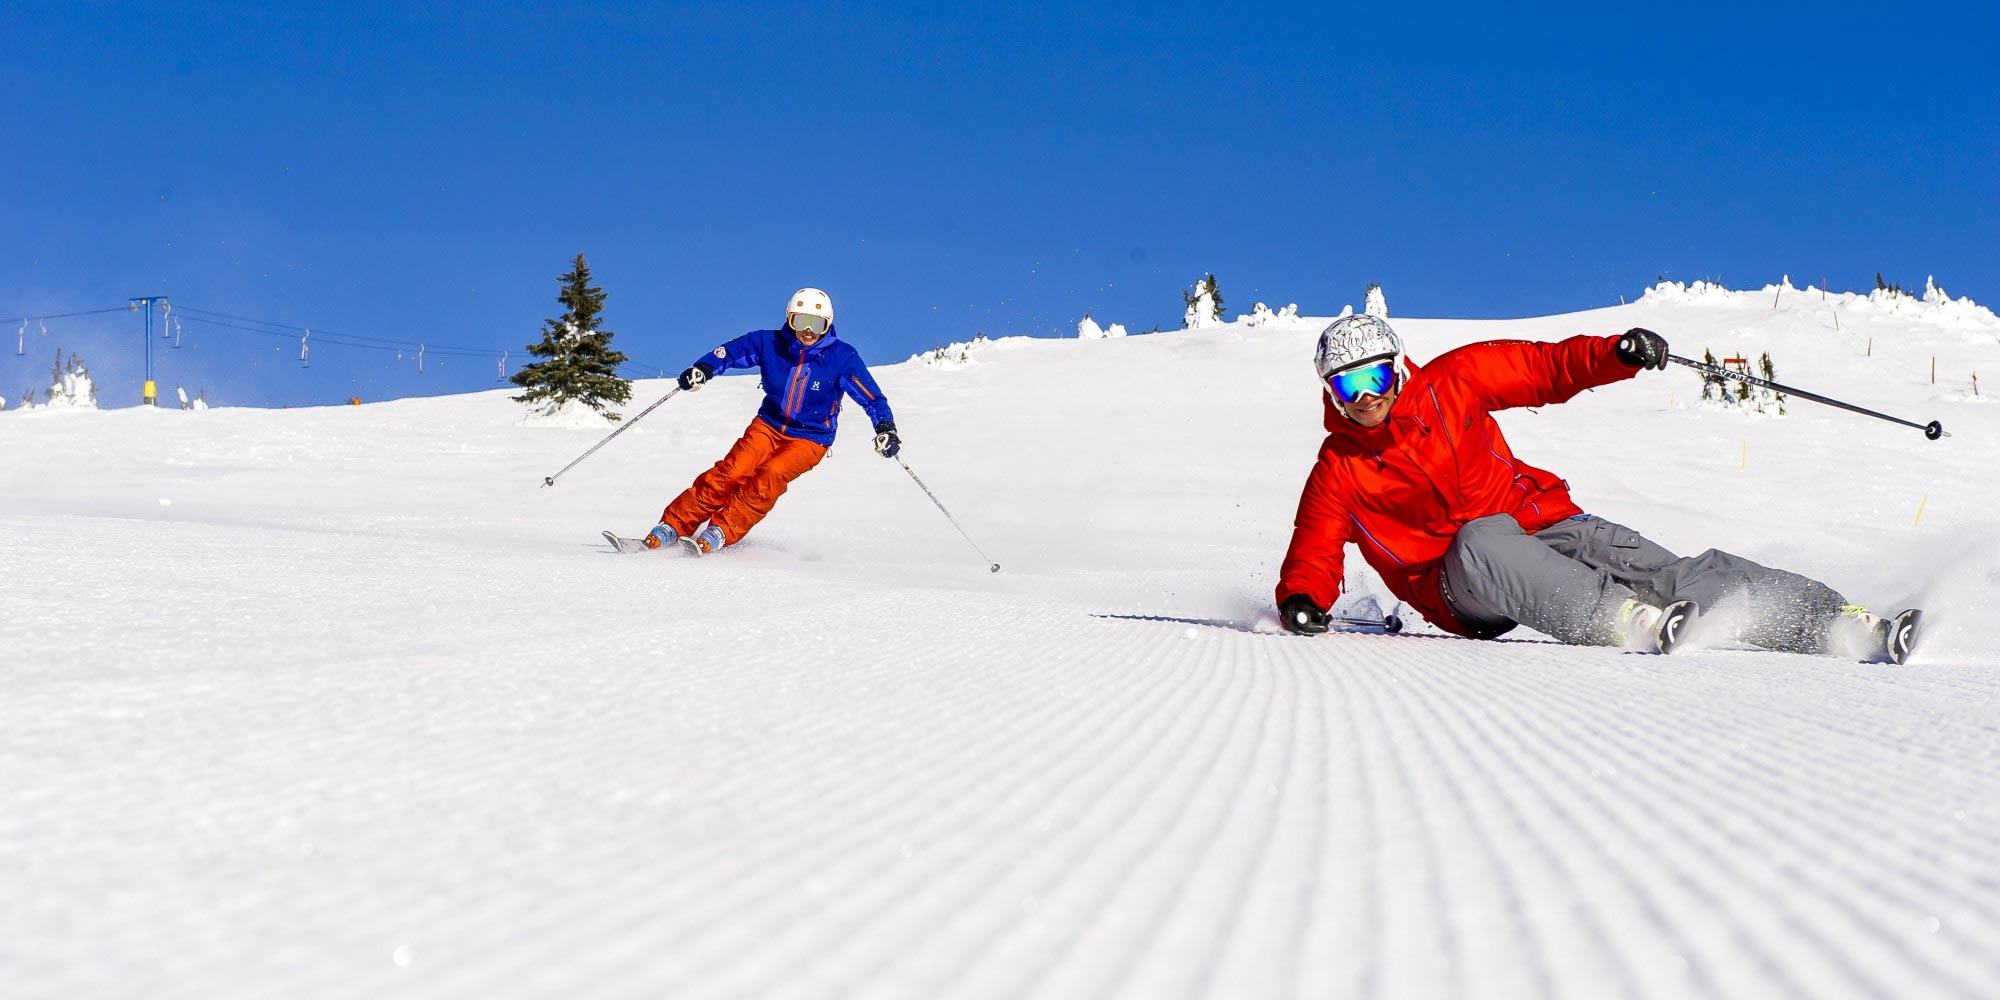 Ski instructor courses starting january